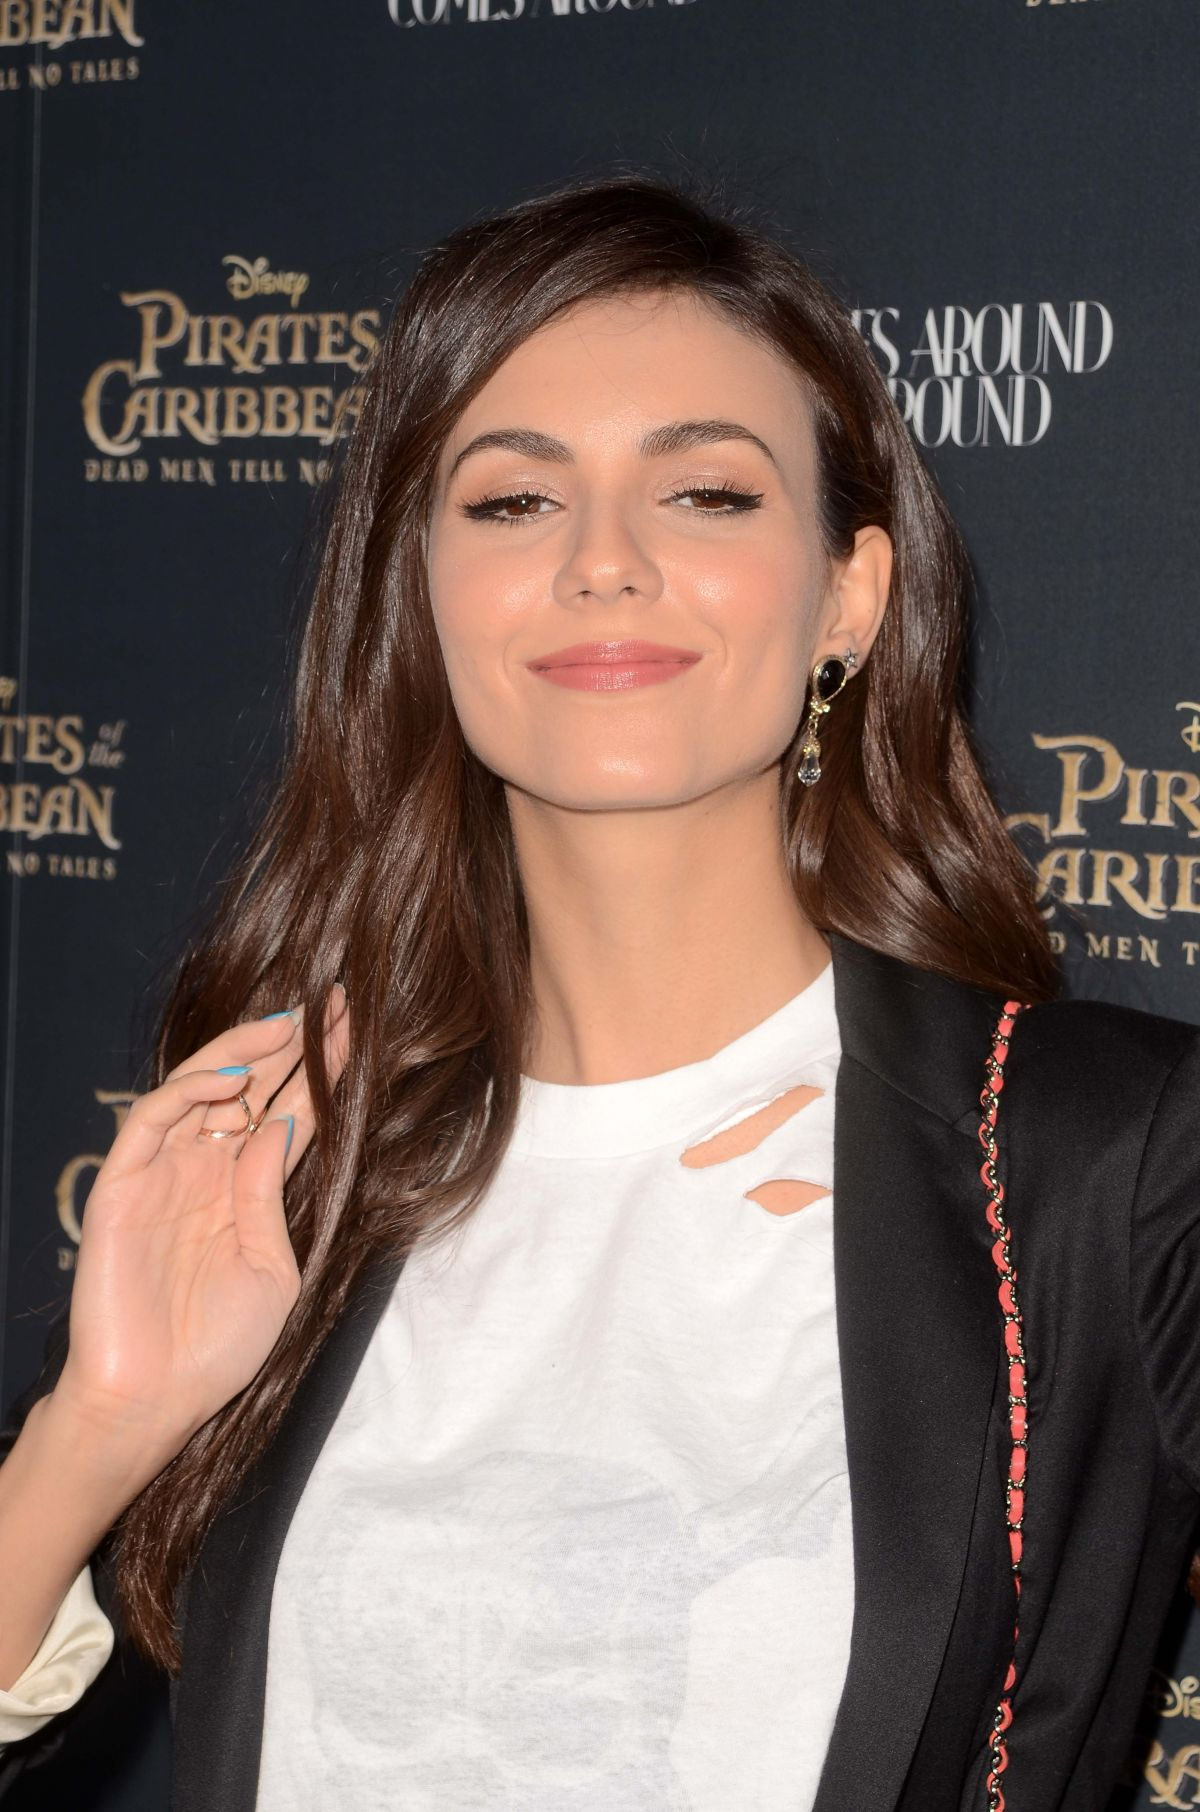 VICTORIA JUSTICE at Pirates: What Comes Around Goies Around Event in Beverly Hills 05/17/2017